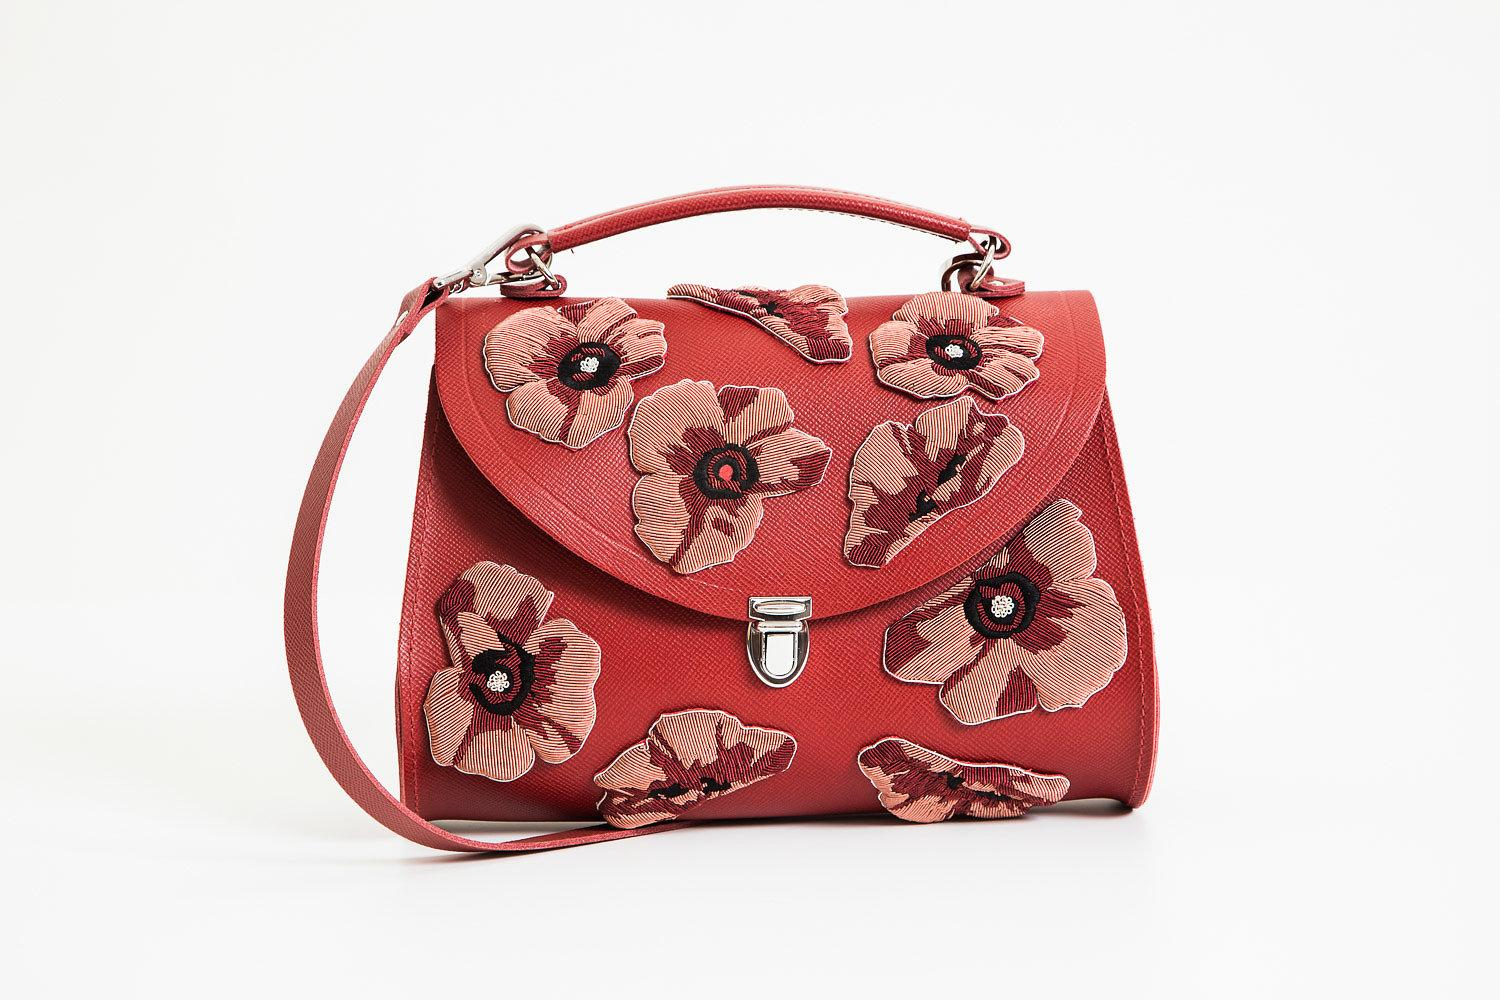 Cambridge Satchel - Embellished Handbag